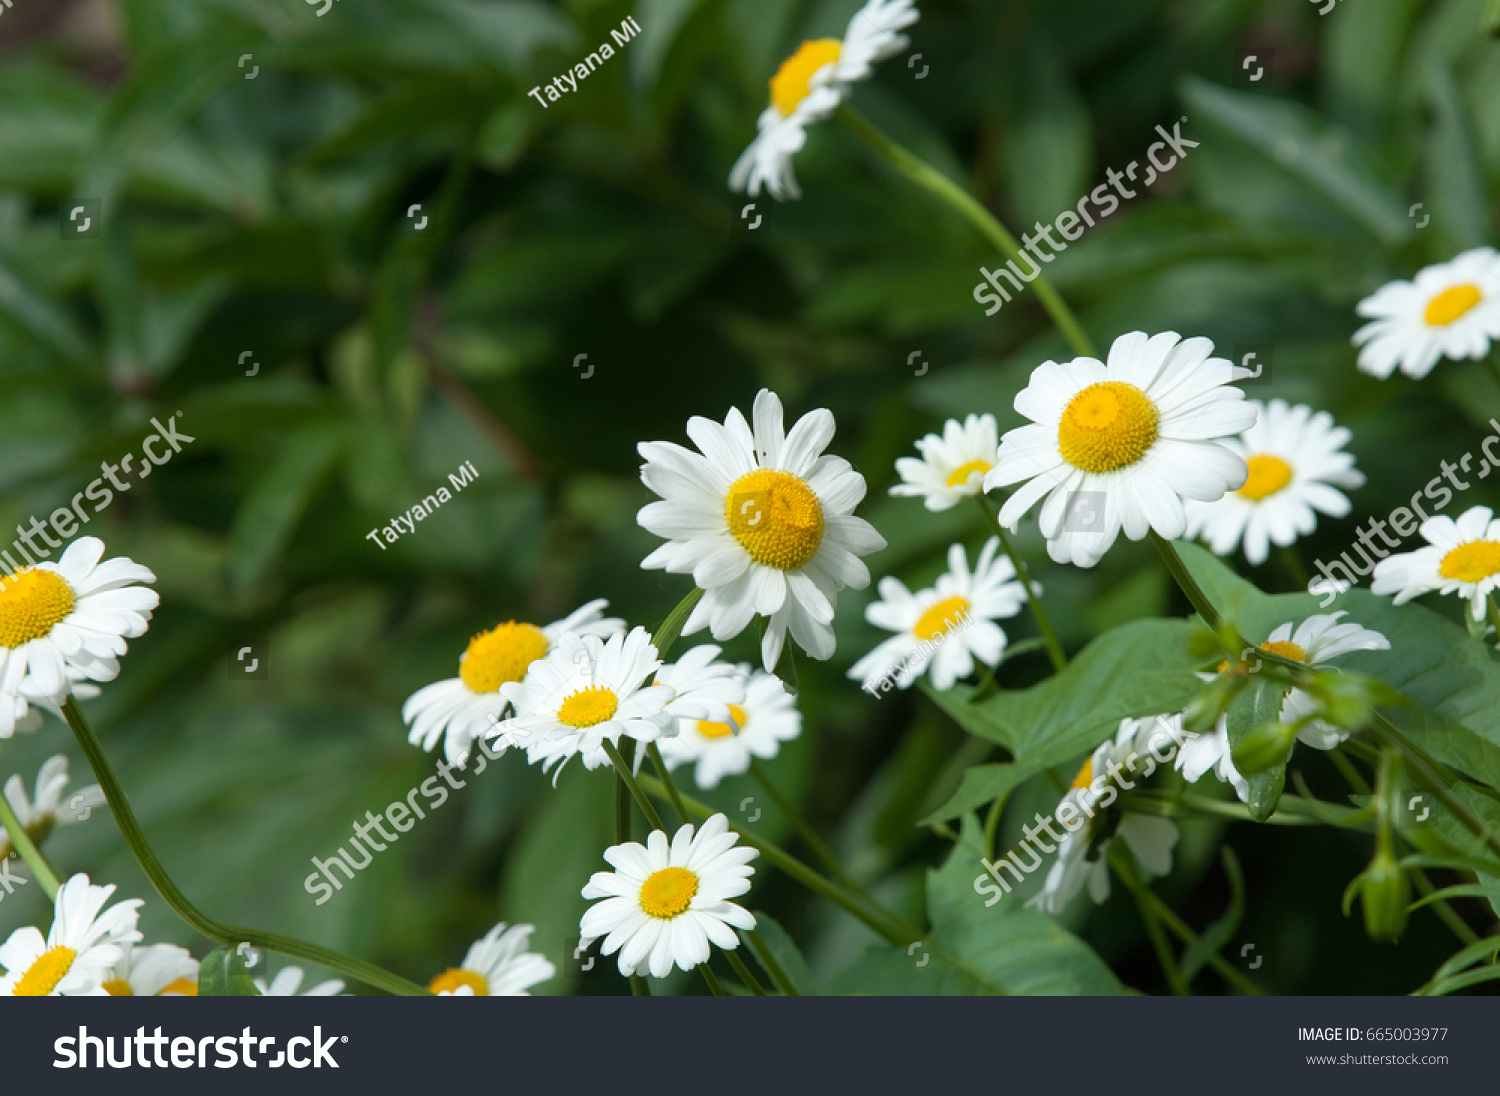 Summer photos flowers daisies aromatic european stock photo royalty summer photos of flowers daisies an aromatic european plant of the daisy family with izmirmasajfo